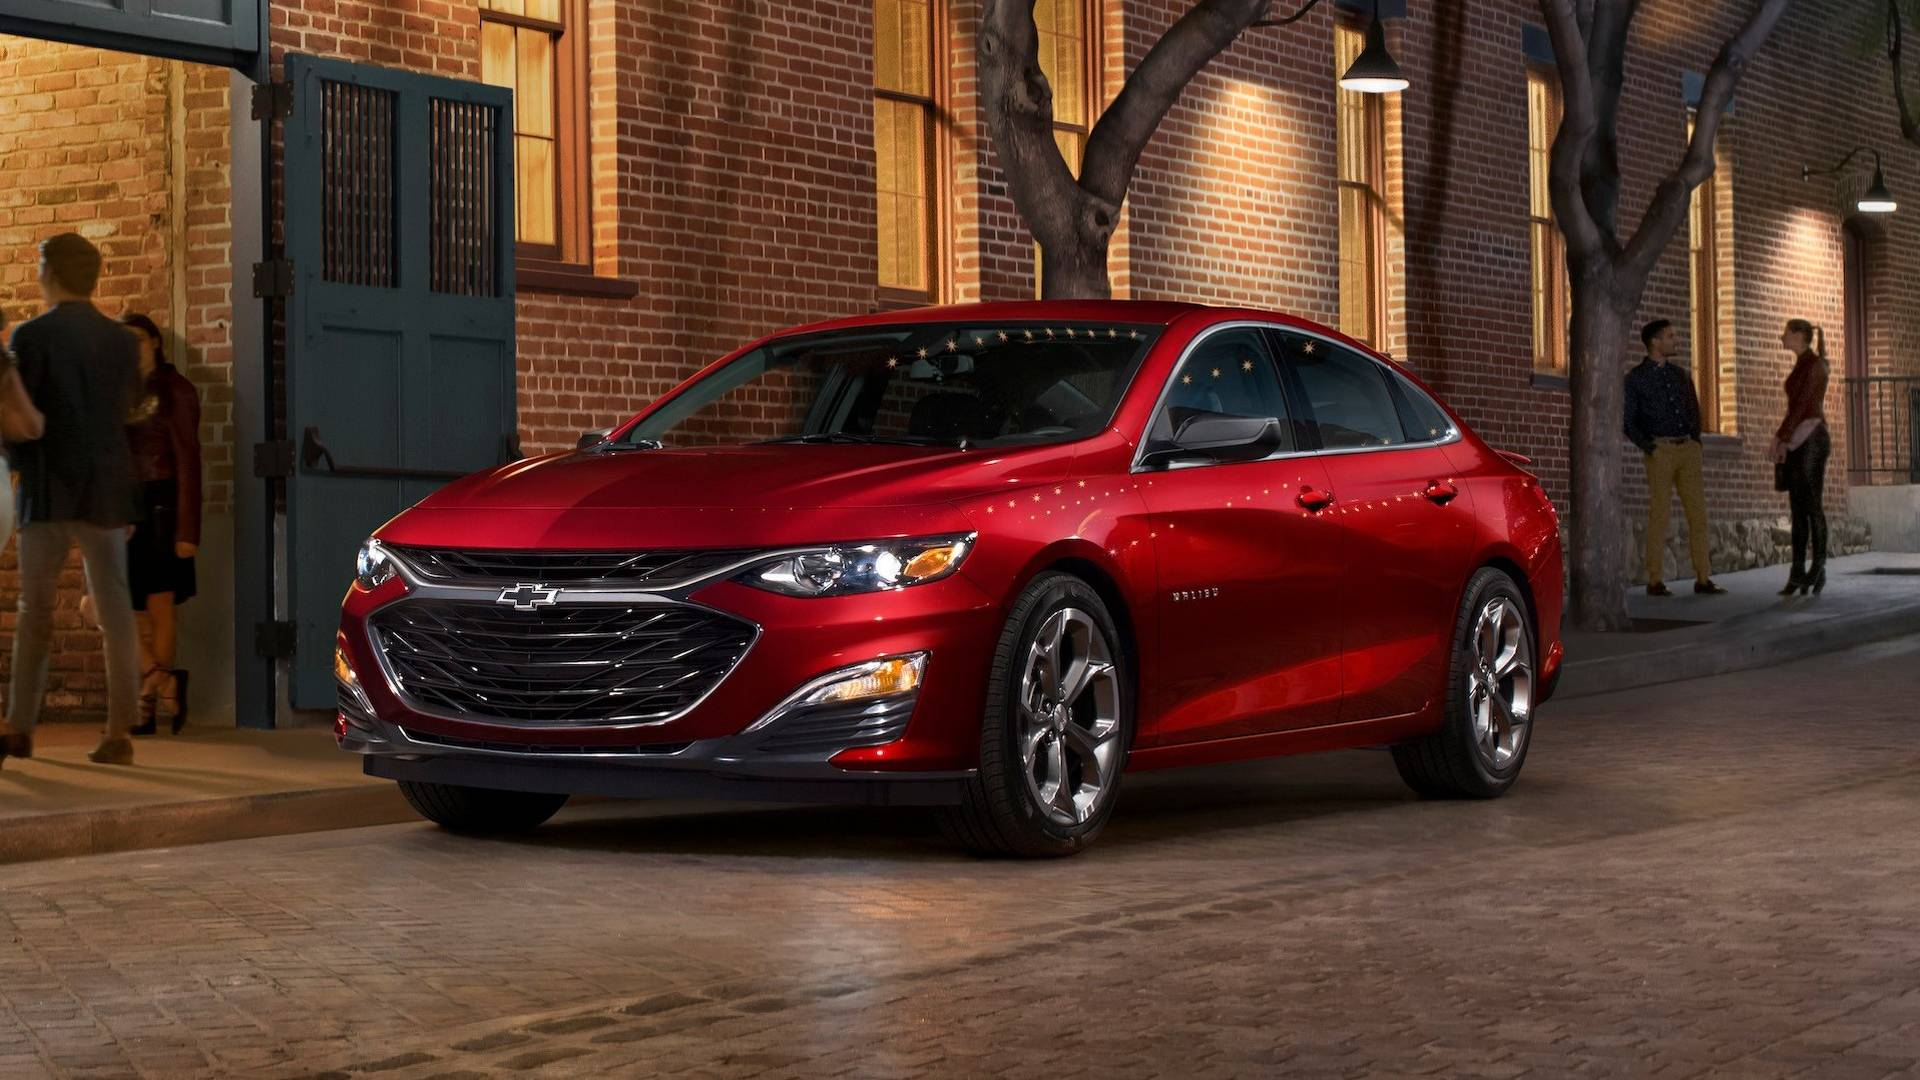 2019 Chevrolet Malibu Joins The Automaker's Facelifted ...